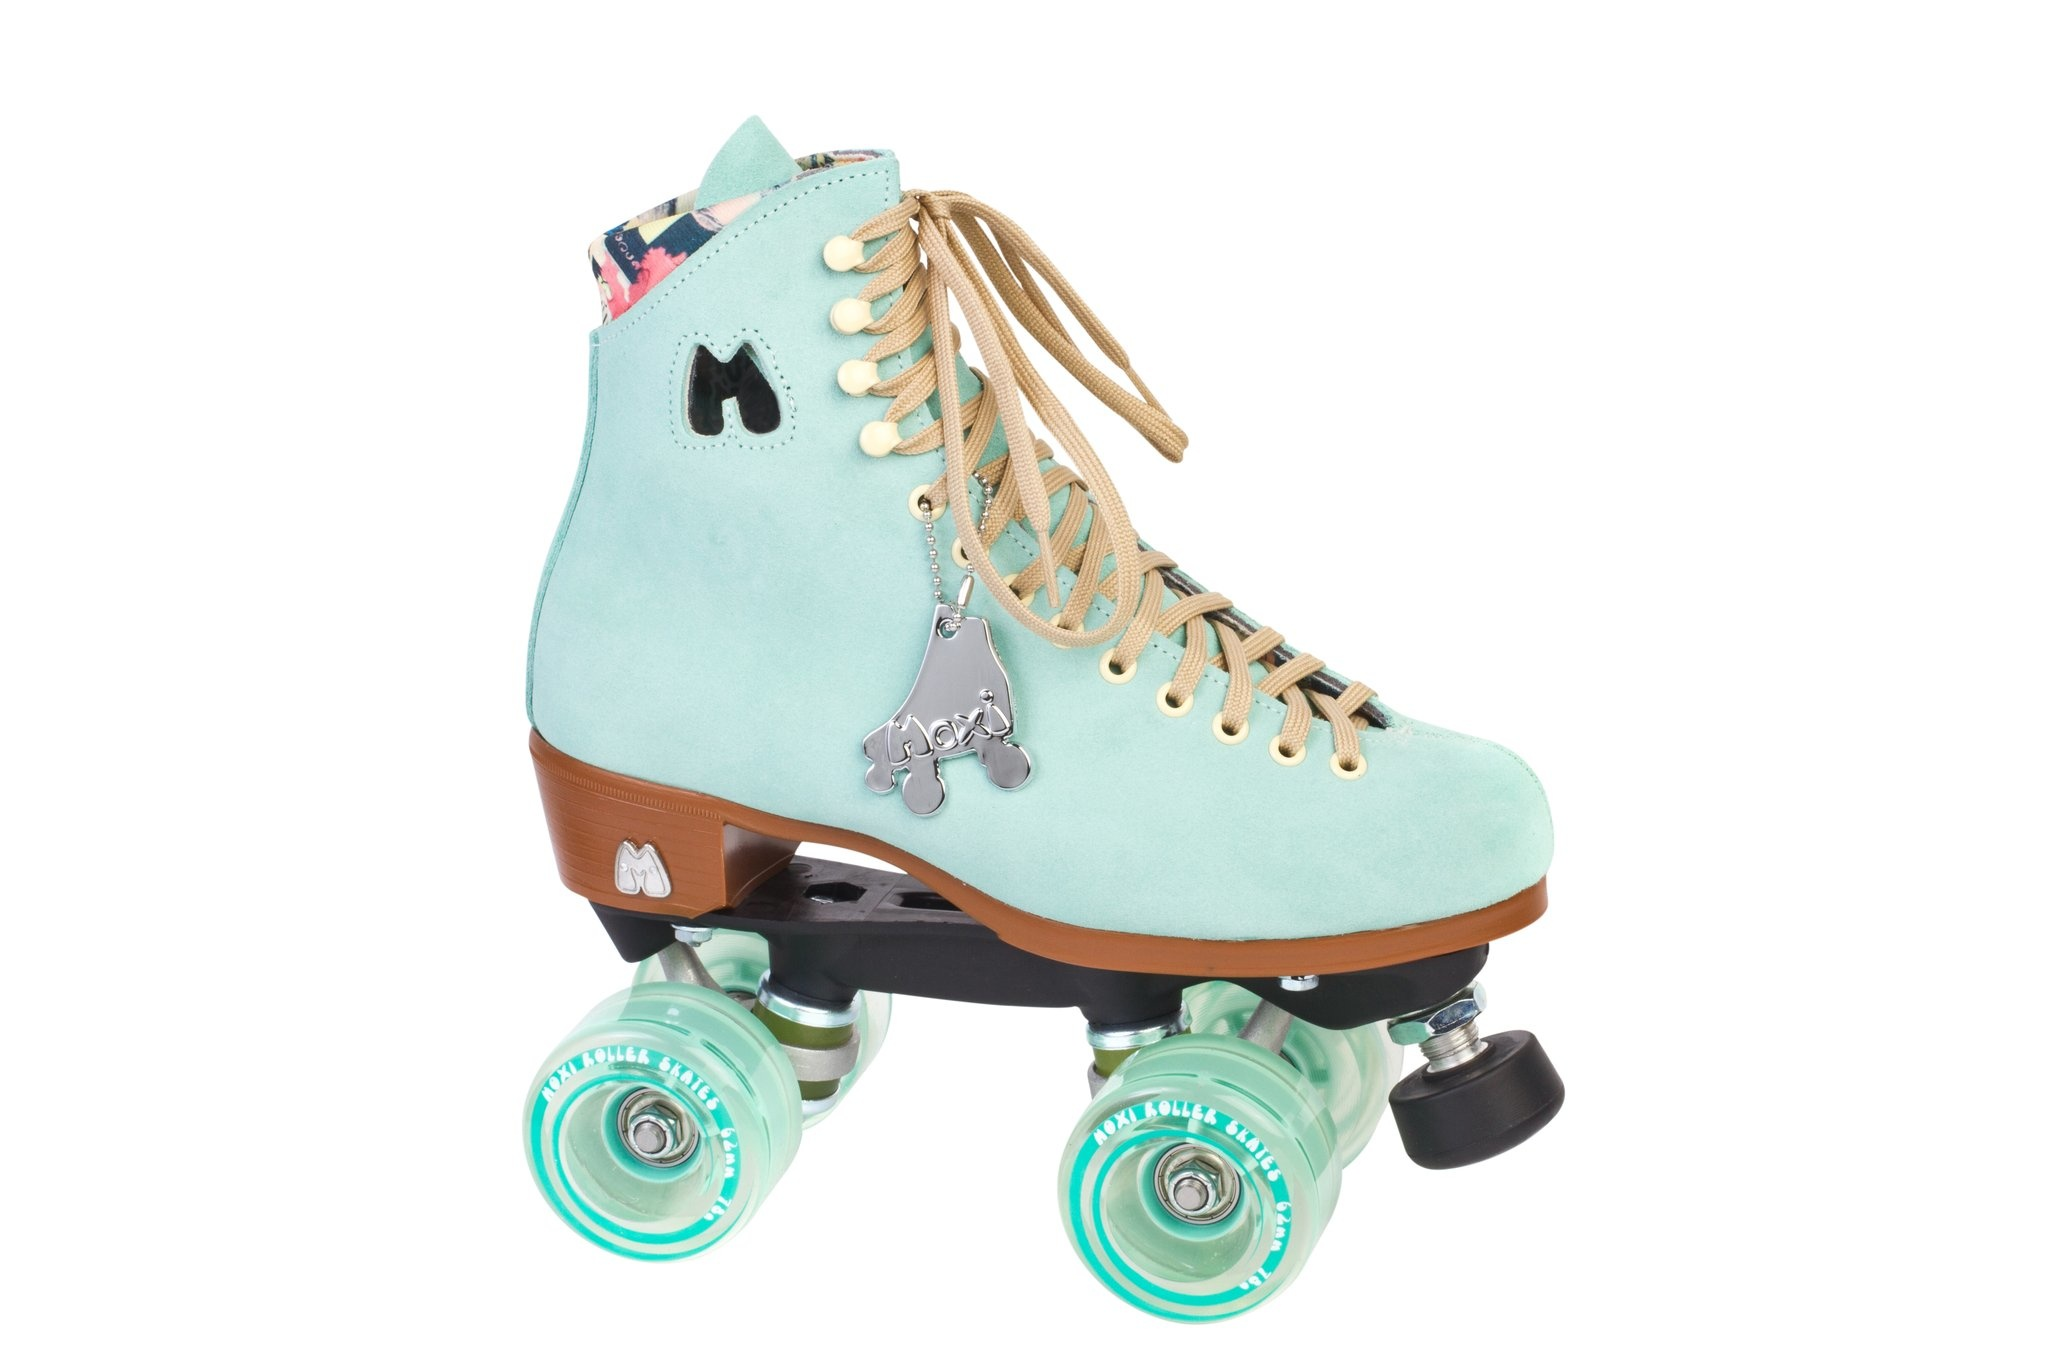 Moxi Lolly Skates Floss Teal